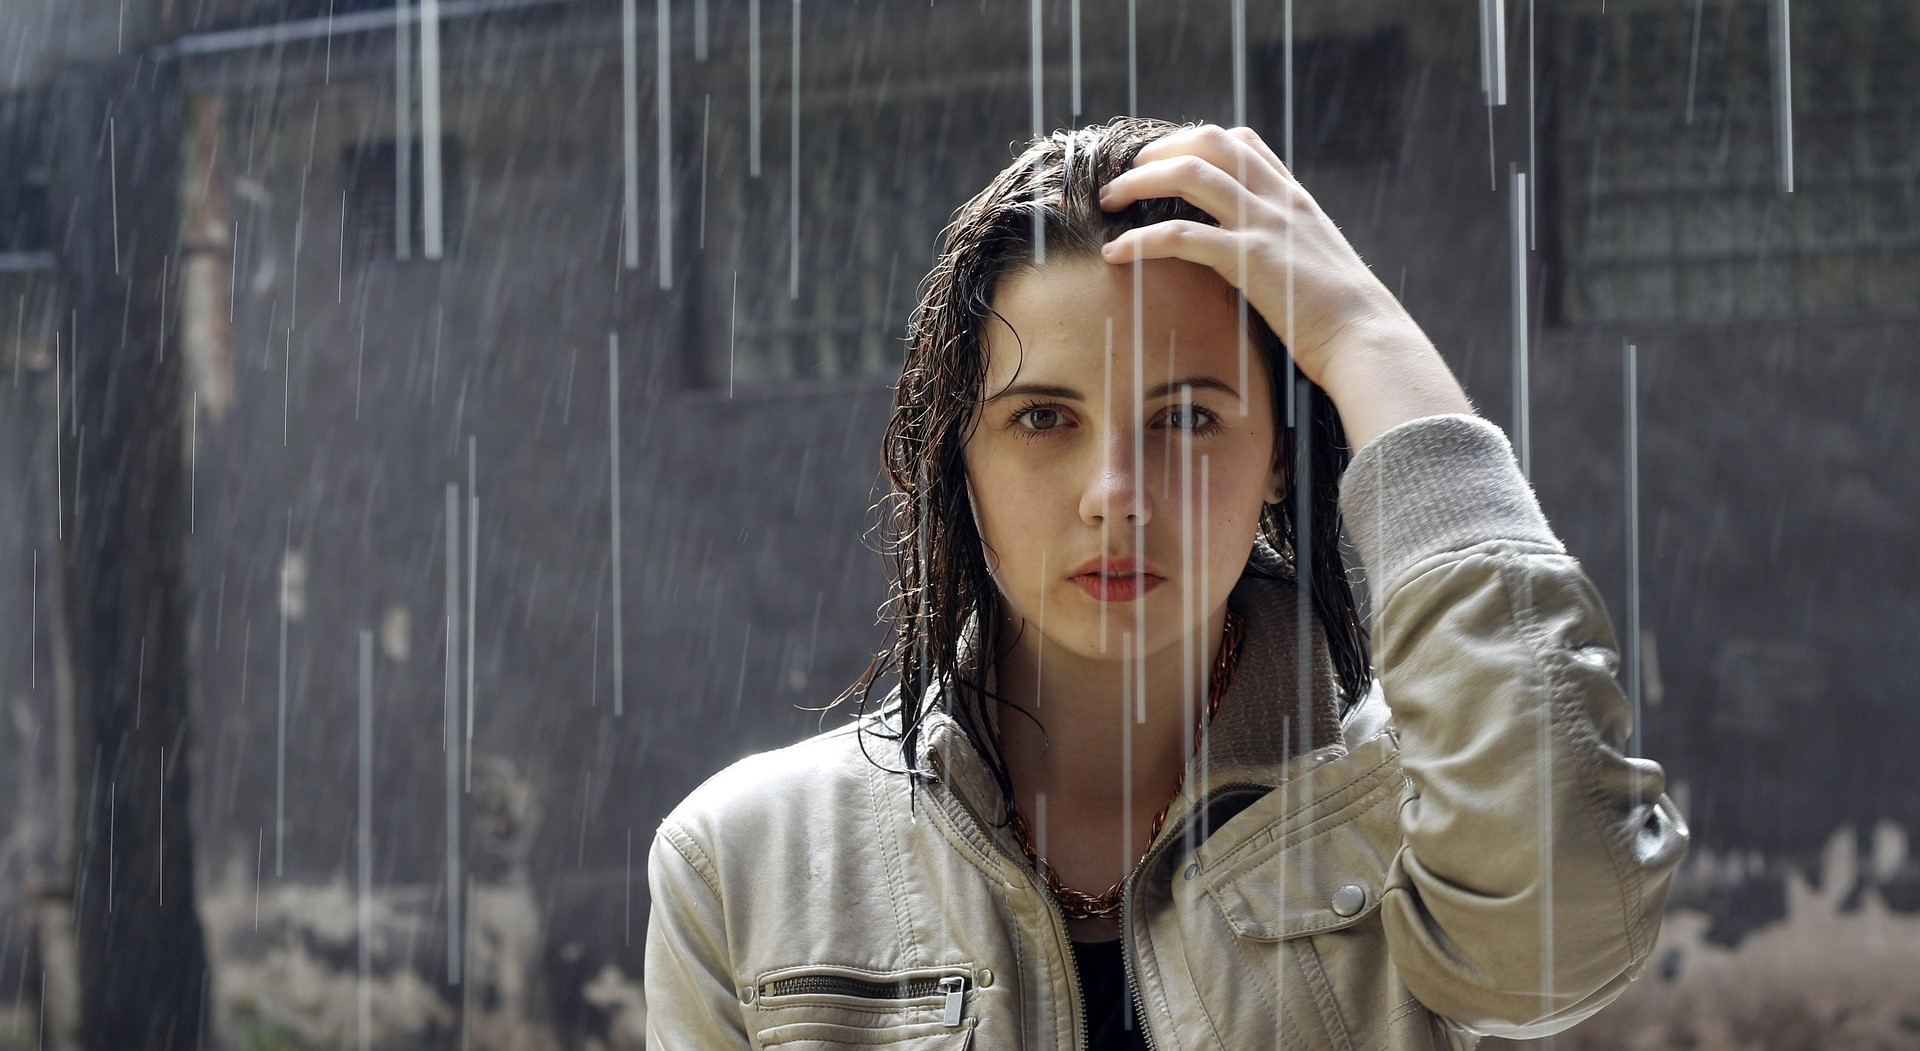 A woman outside in unpleasant rain without an umbrella